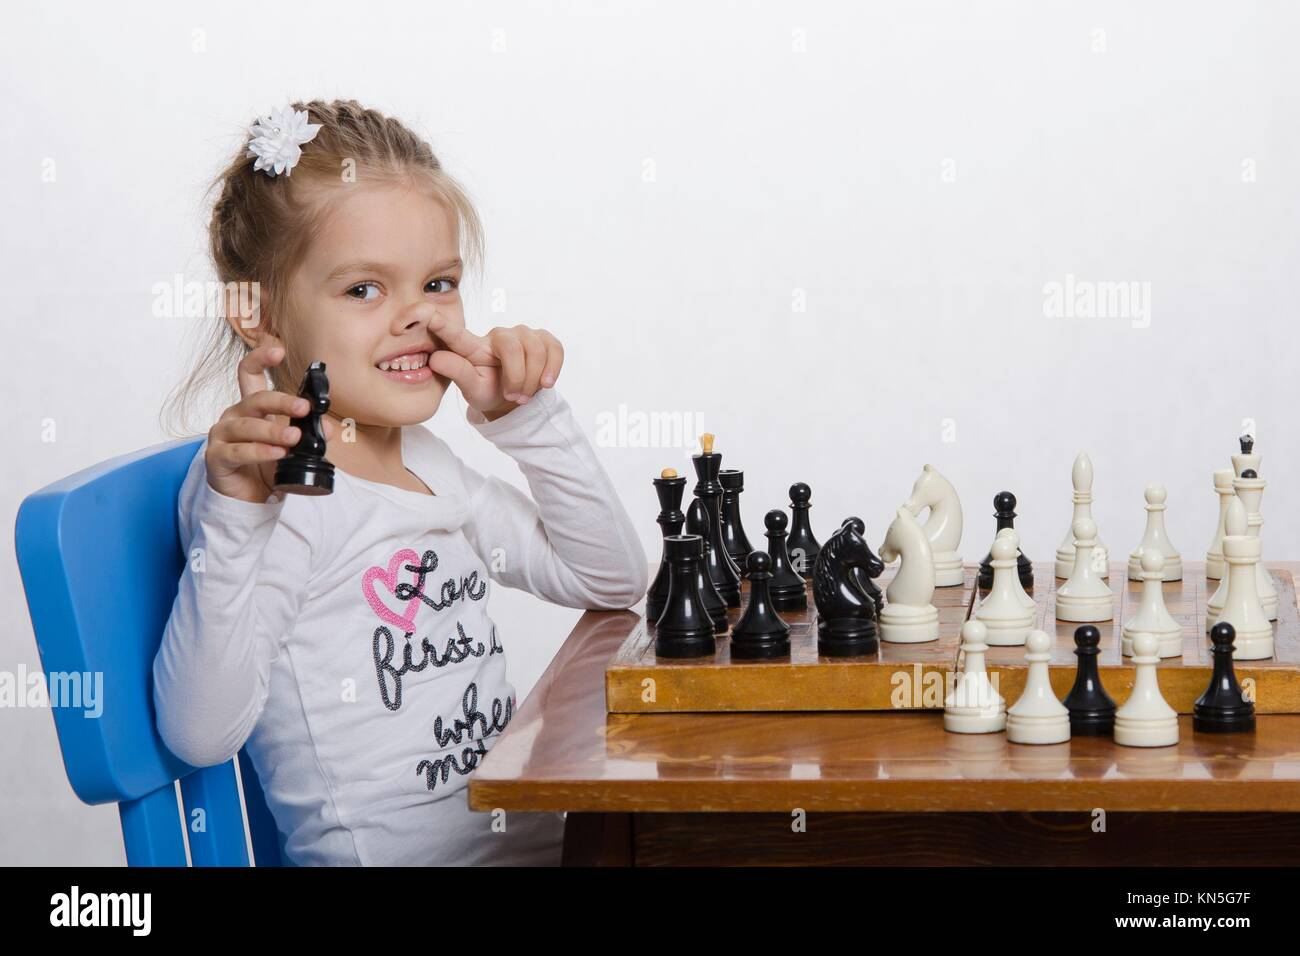 Four-year-old girl playing in chess. A girl holding a hand shape, finger of the other hand tucked into the nose. - Stock Image